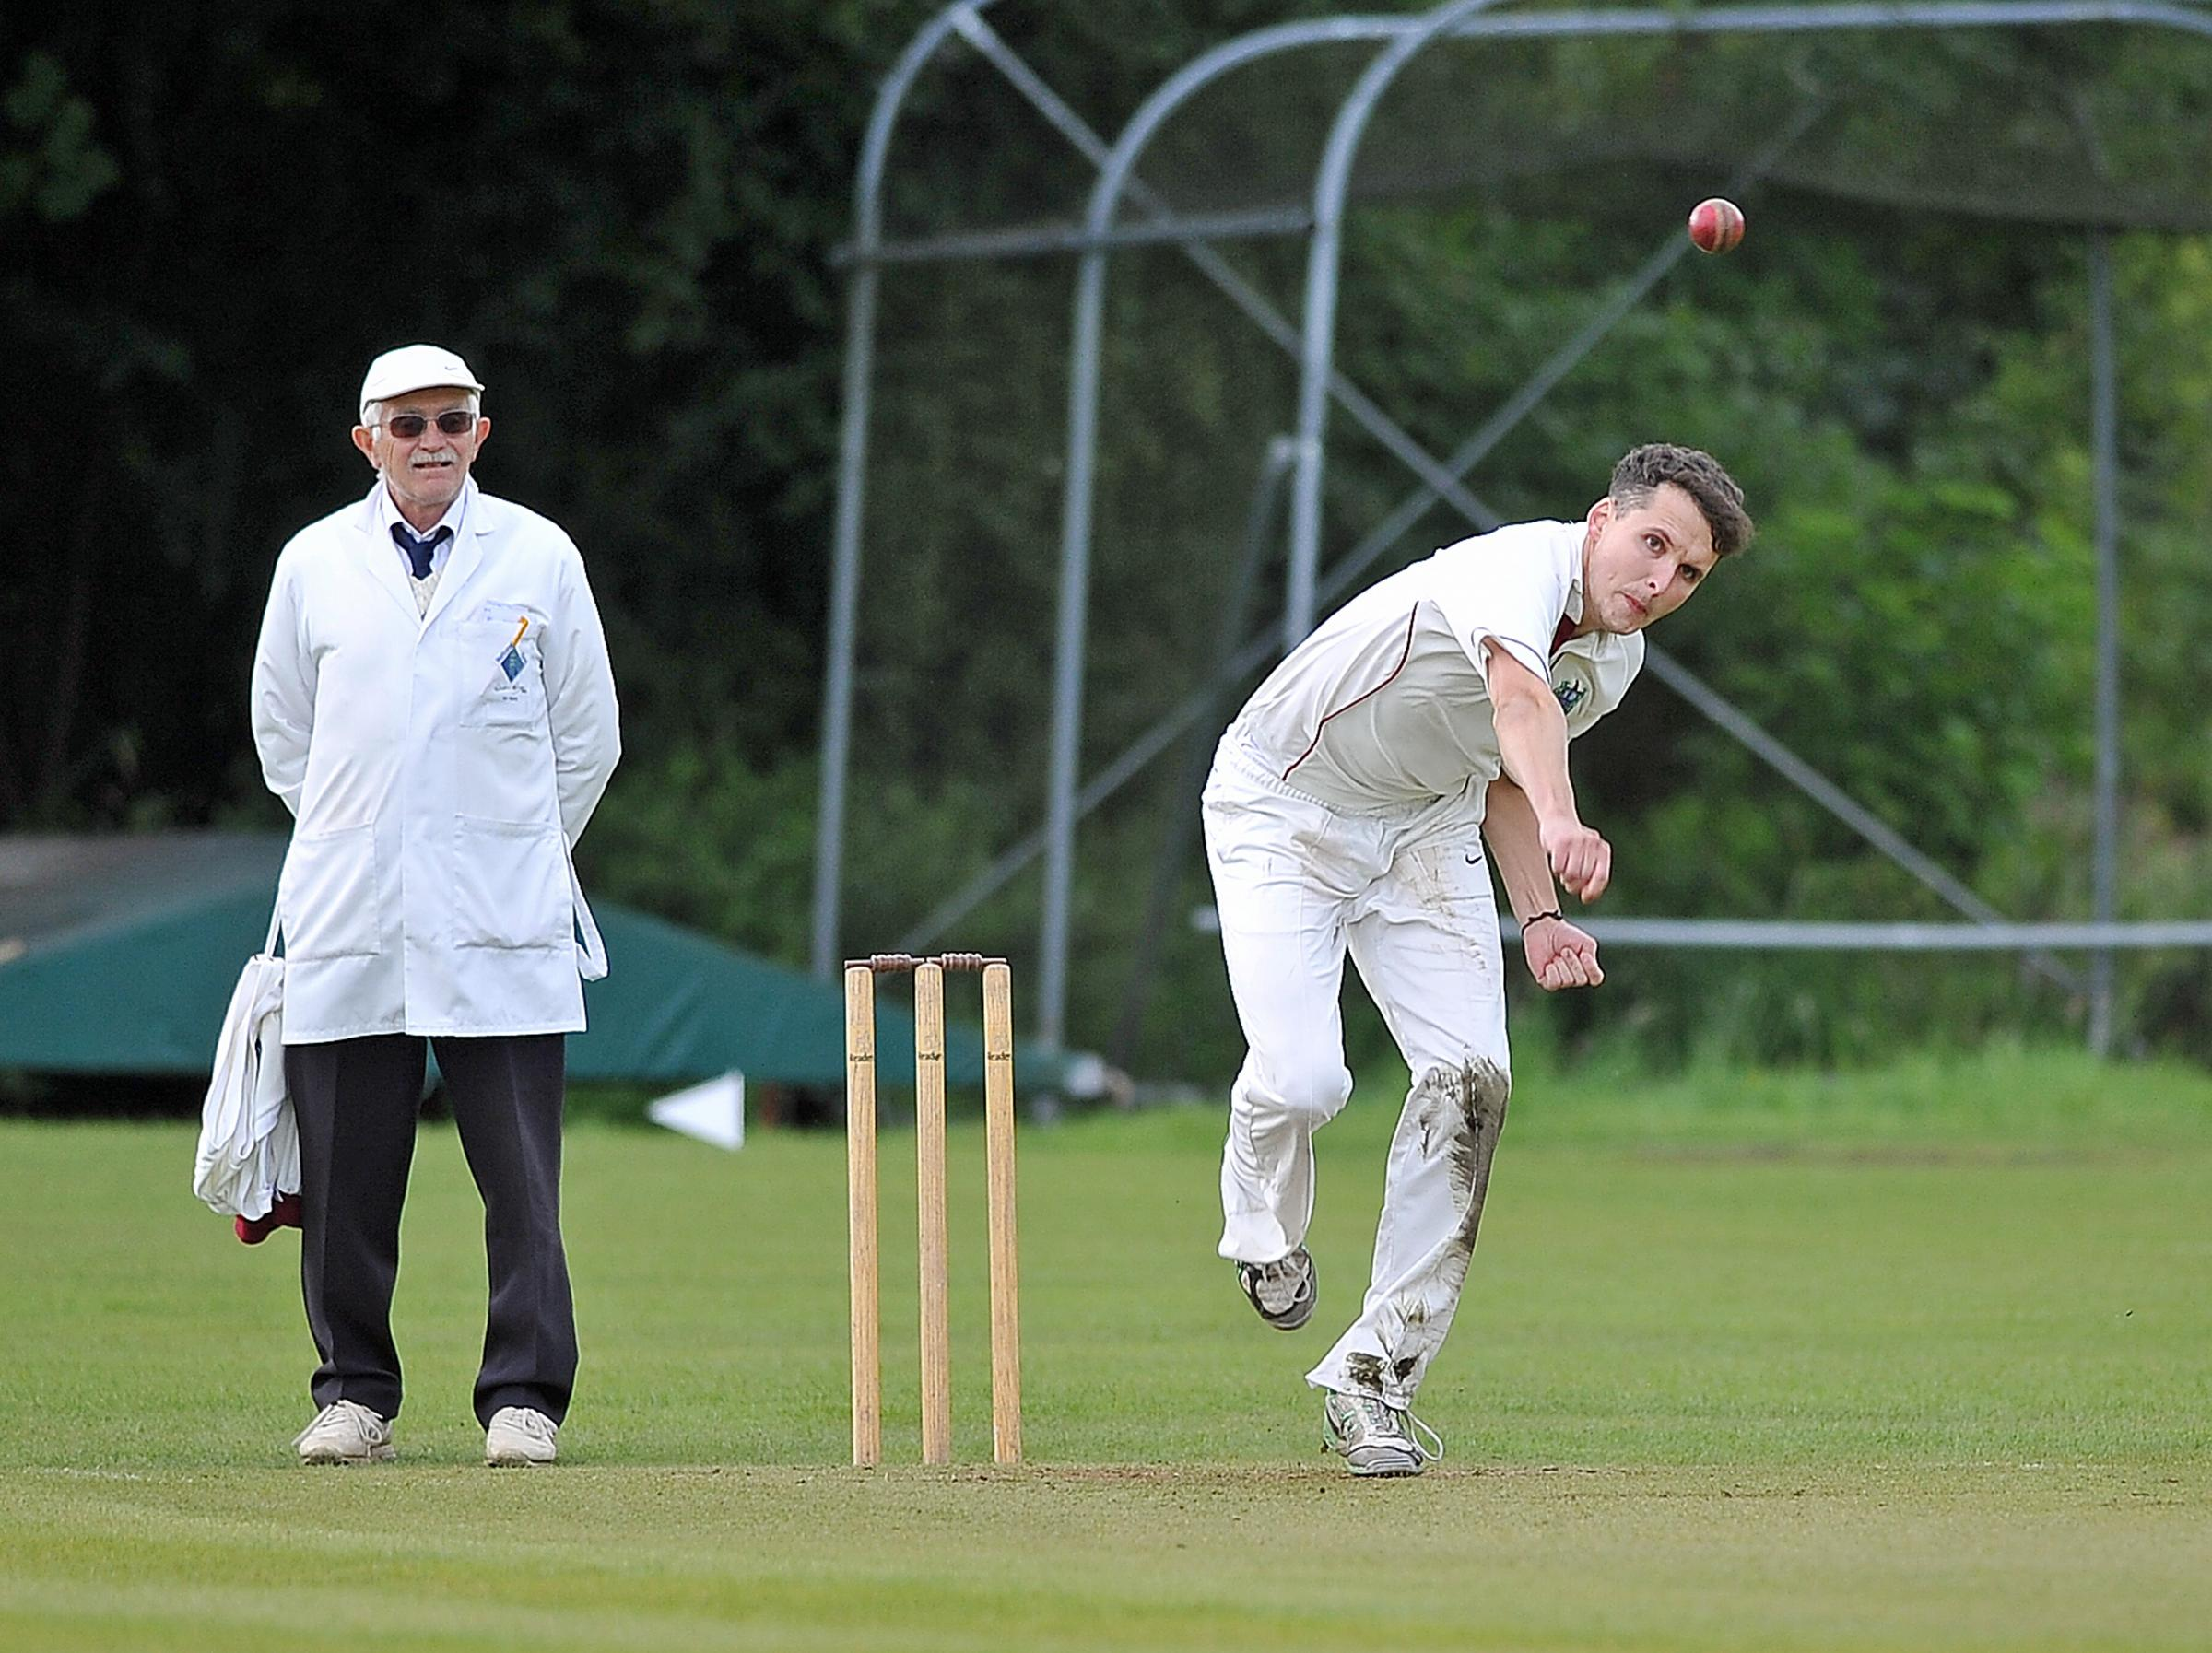 Paul Quinlan took 5-44 for Keighley in their comfortable victory over Brighouse